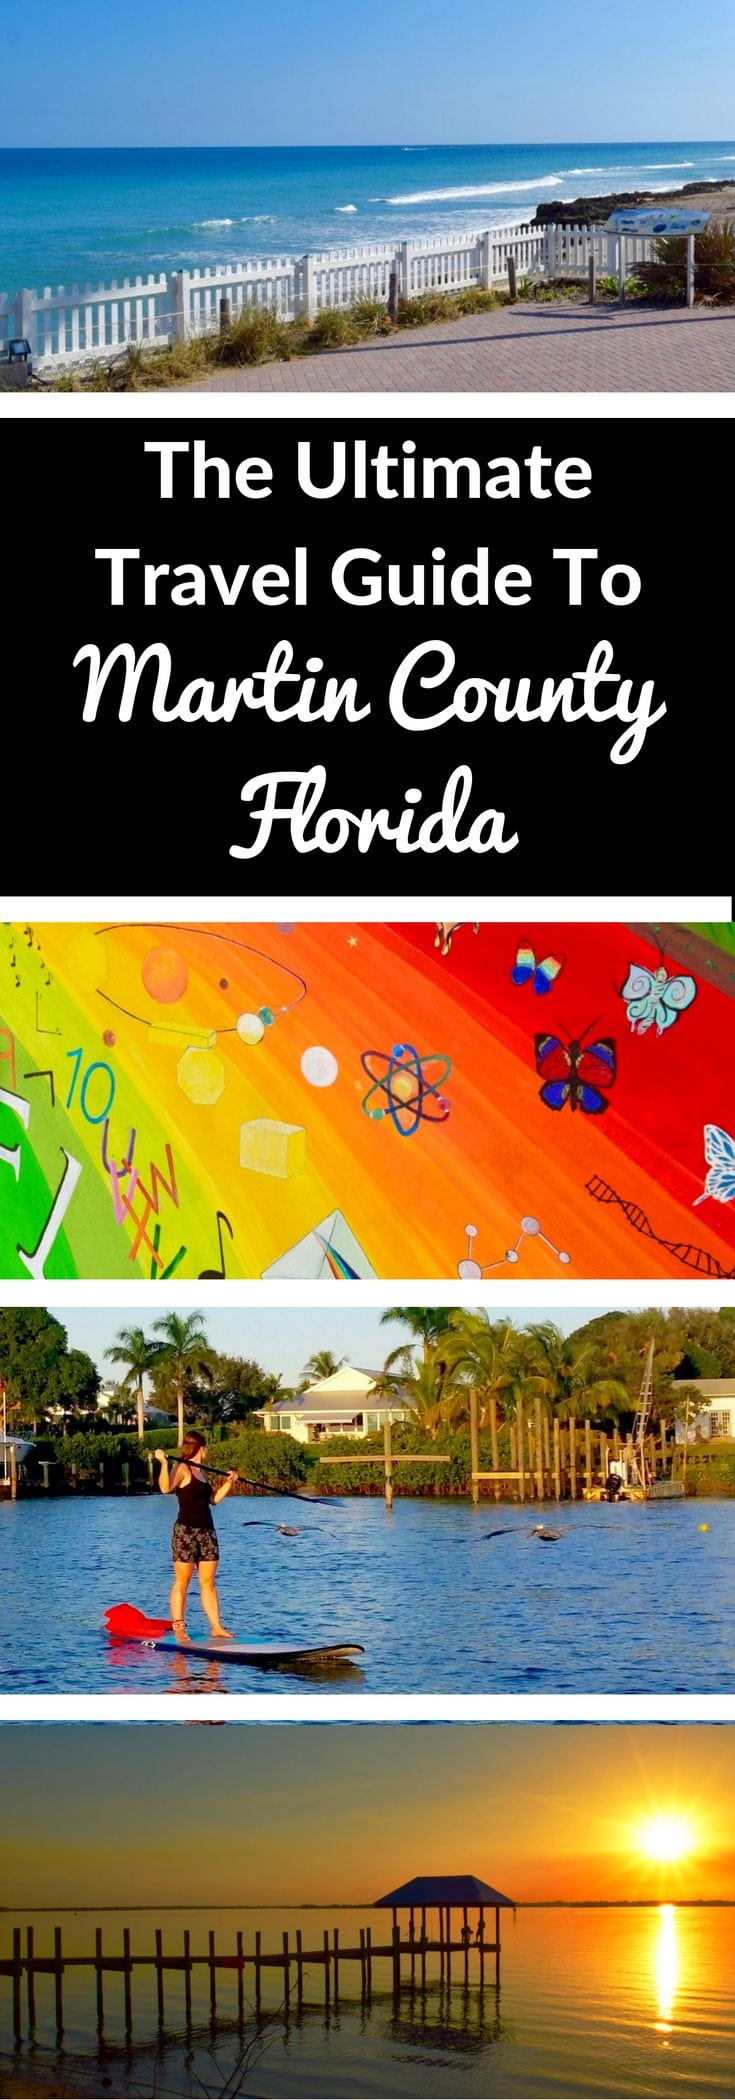 The Ultimate Travel Guide To Martin County, Florida